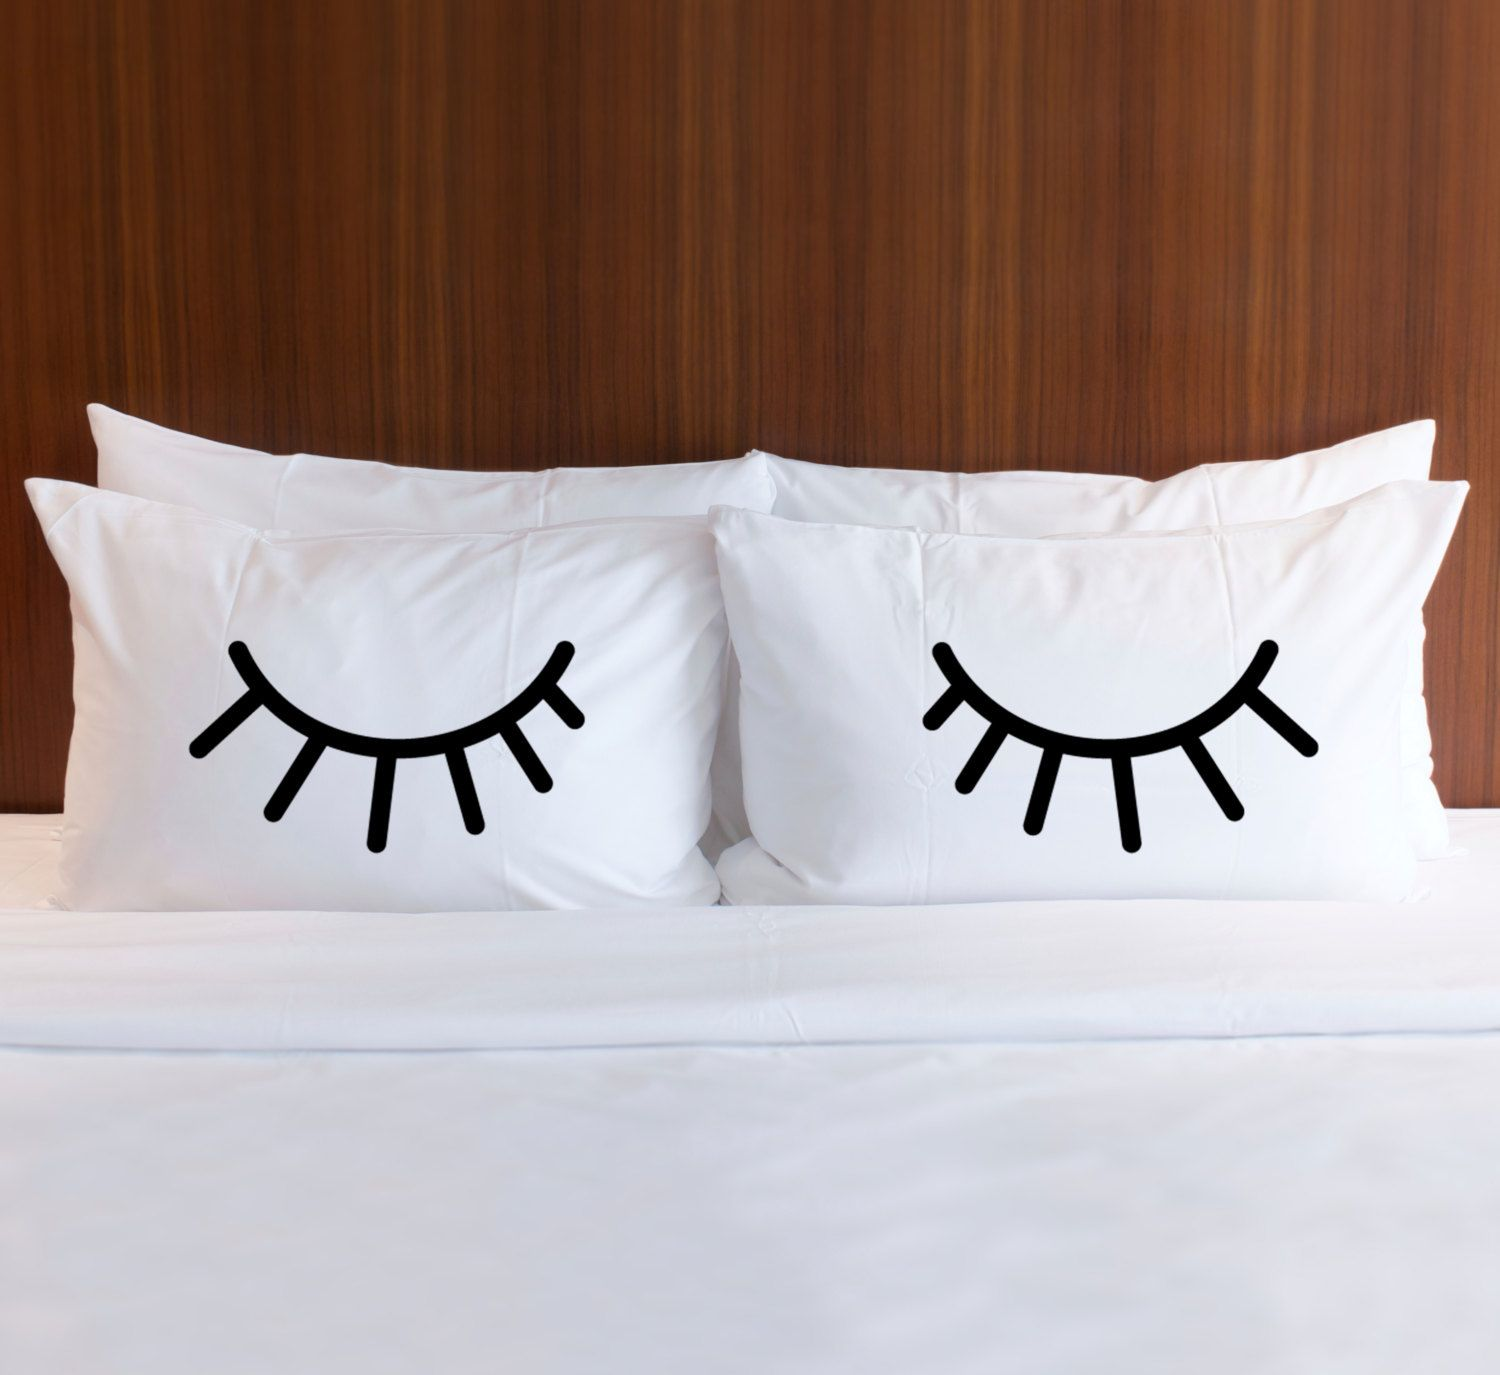 Pillowcases For Bedroom Gift For Bed Pillows Eyelids Shut Etsy Bed Pillows Pillow Case Sets Bedroom Gift